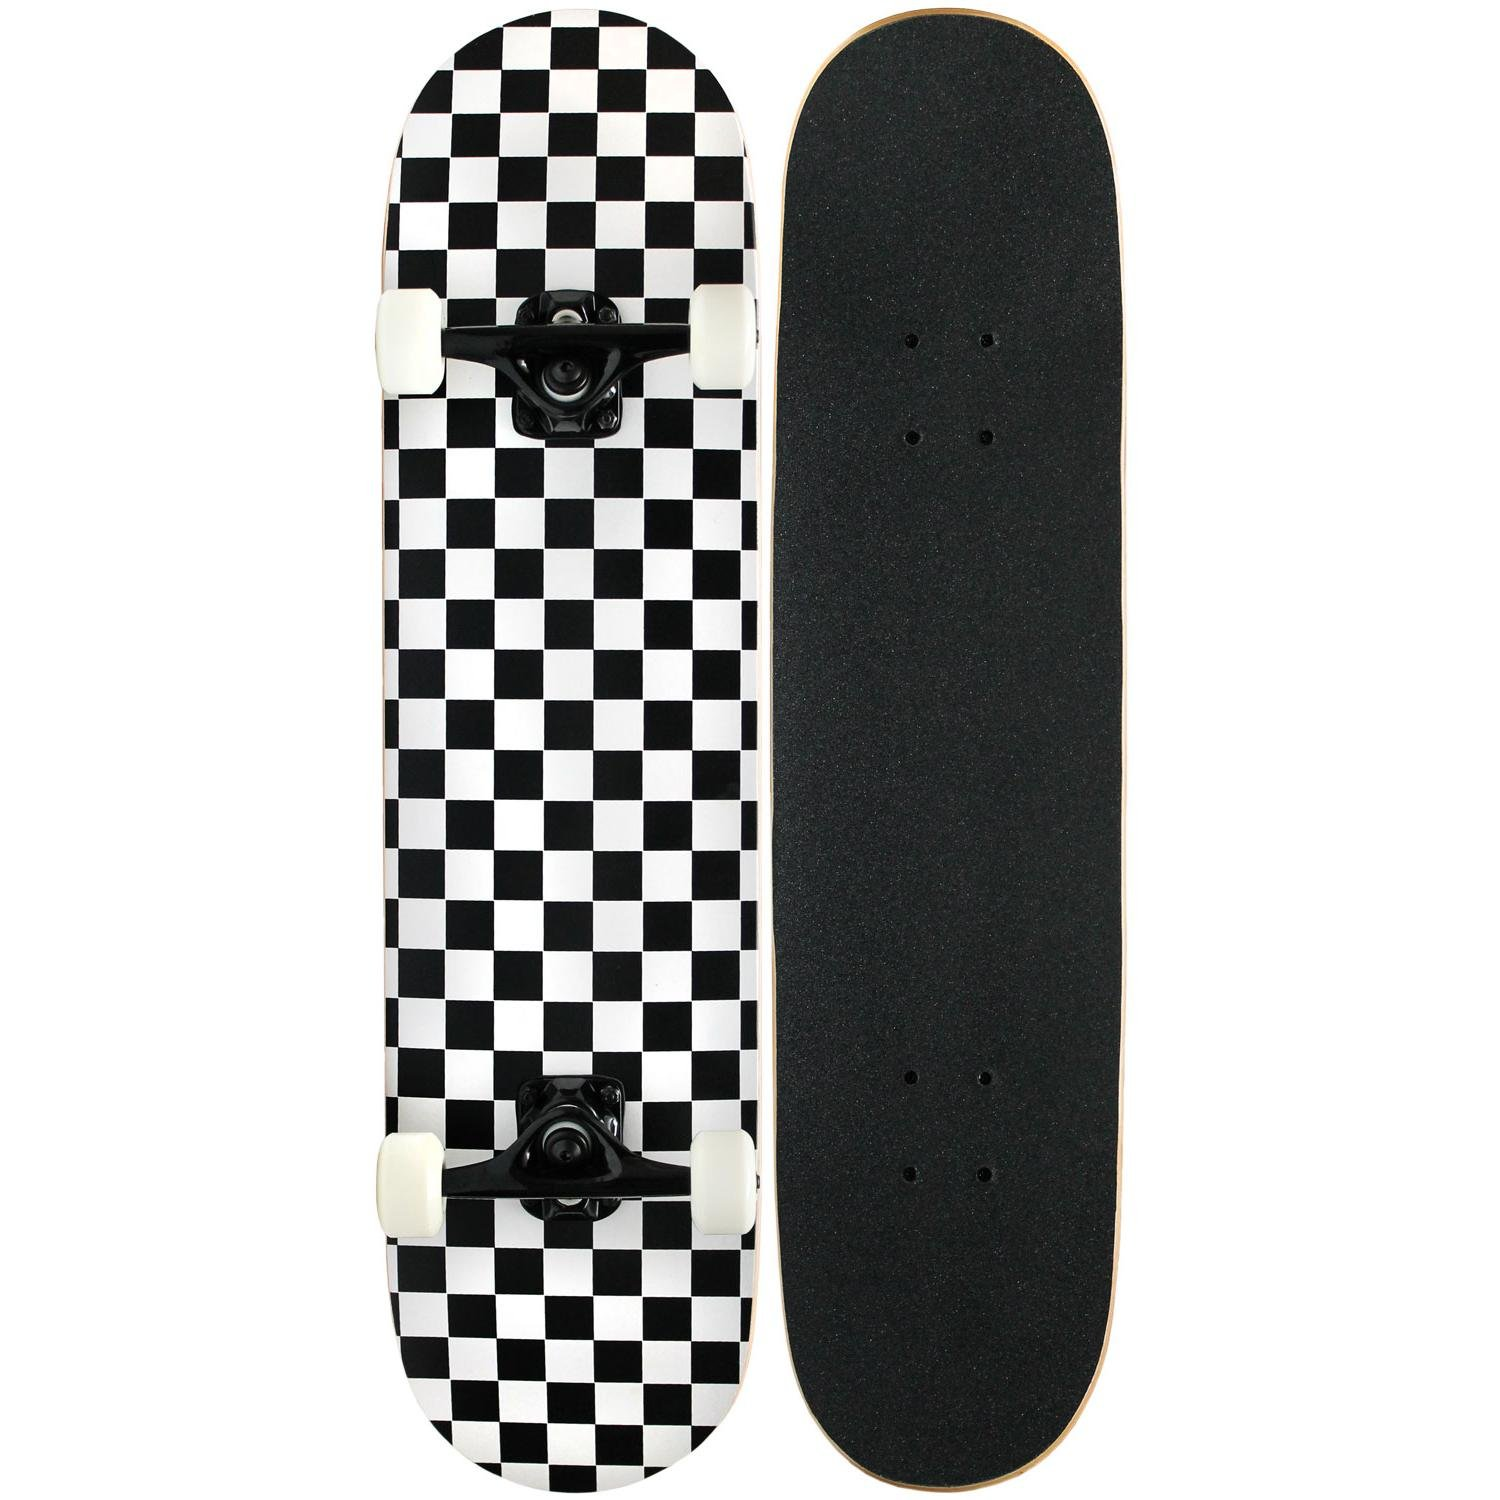 KPC Pro Skateboard Complete, Black and White Checker by KPC